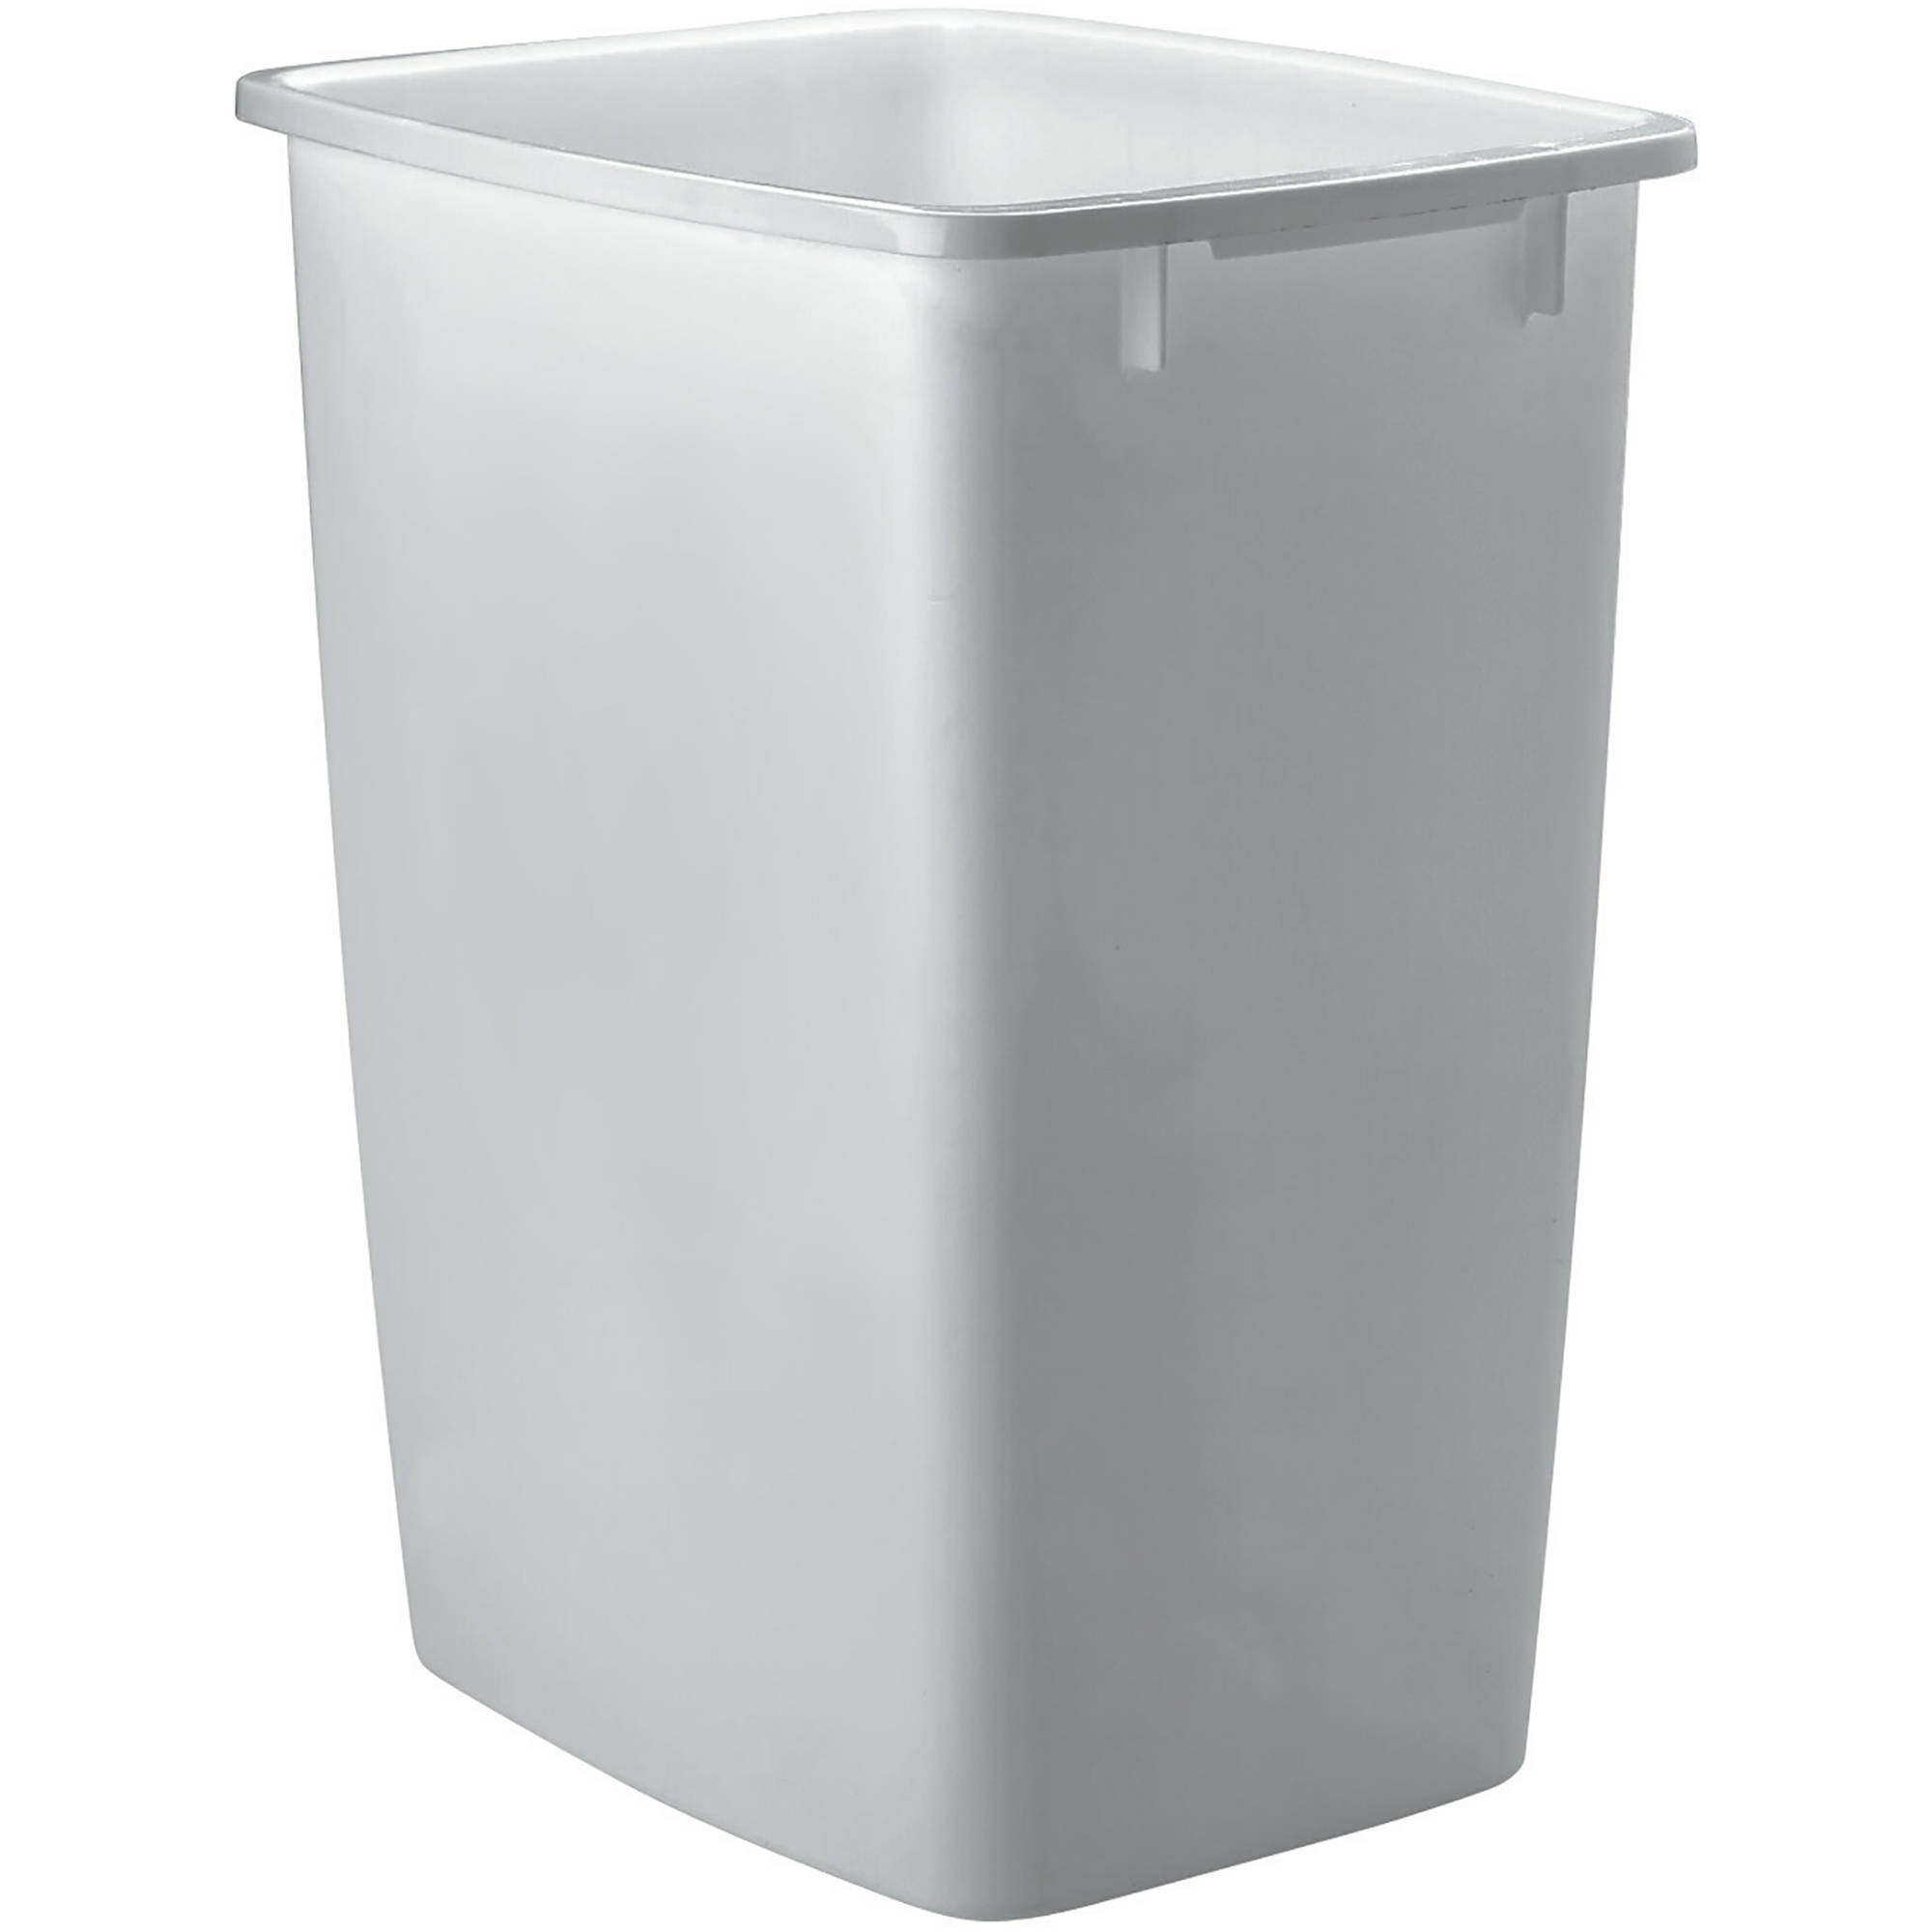 Waste Basket rubbermaid wastebasket, 9 gal, white - walmart